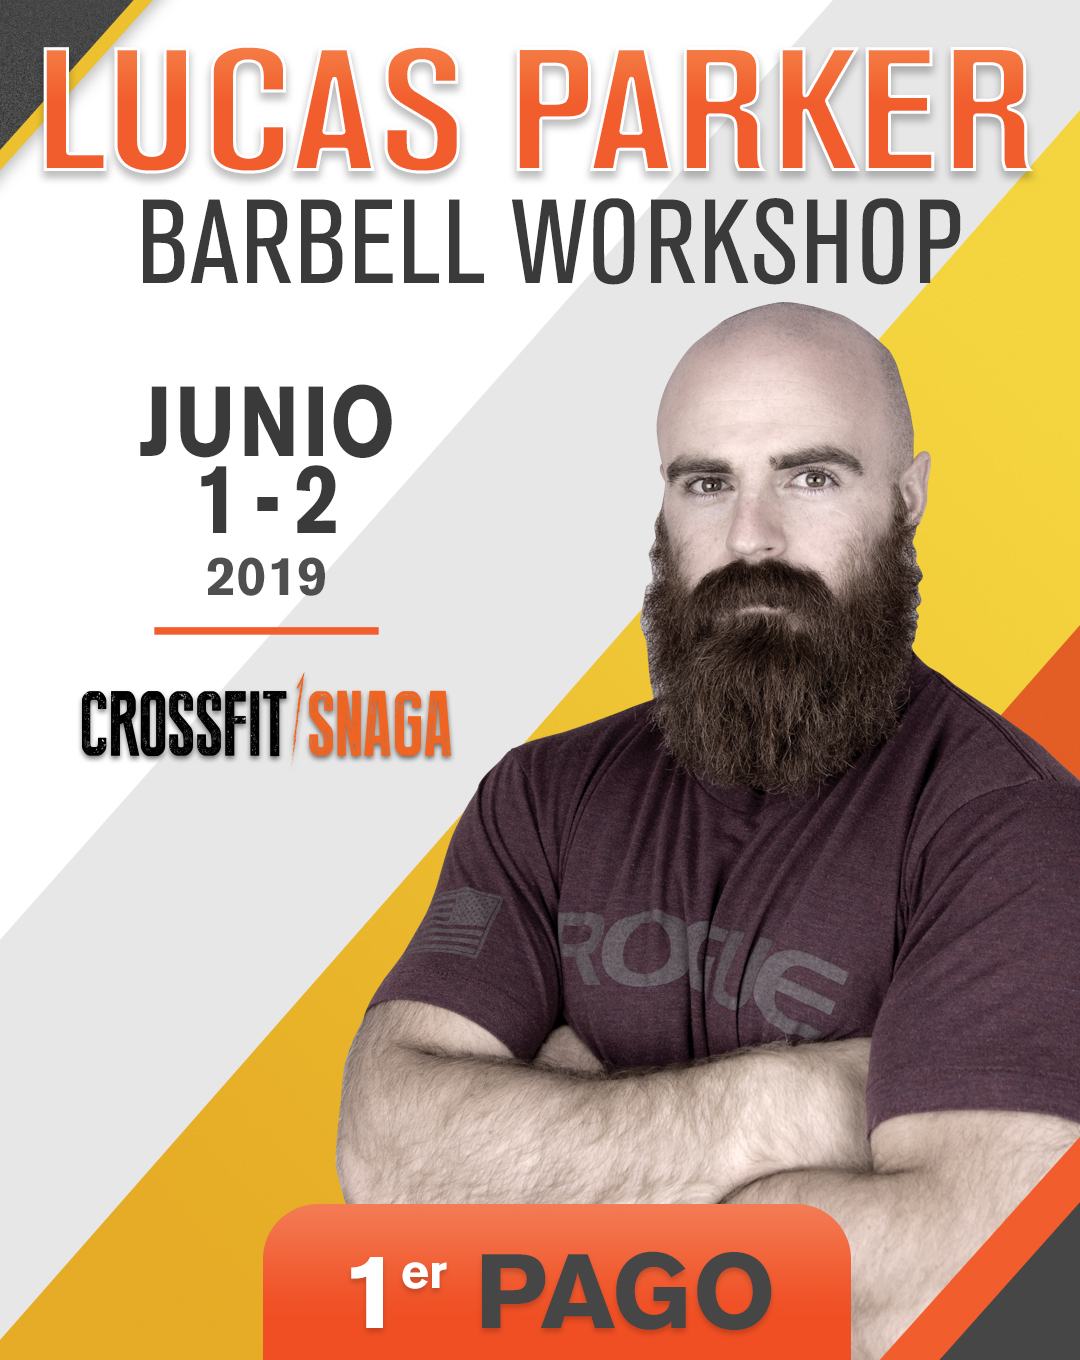 Lucas Parker Barbell Workshop - Crossfit Snaga Escazú